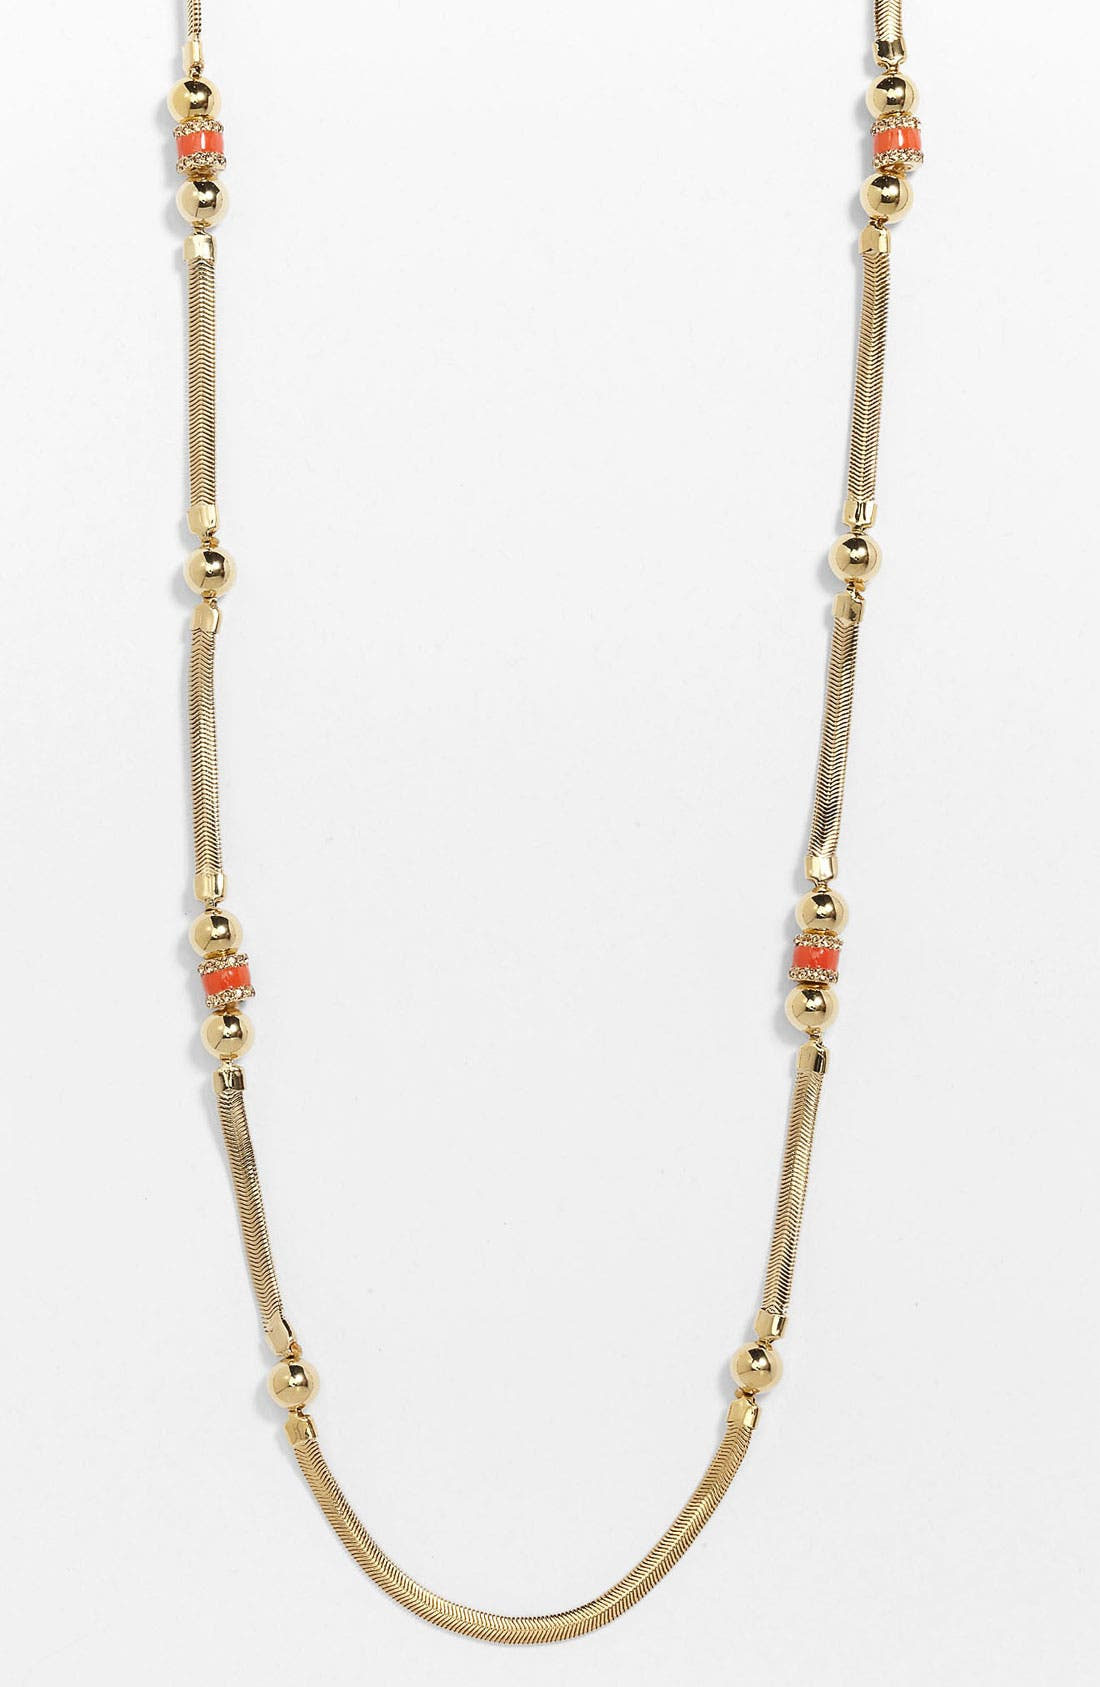 Main Image - Givenchy 'Harvest' Long Station Necklace